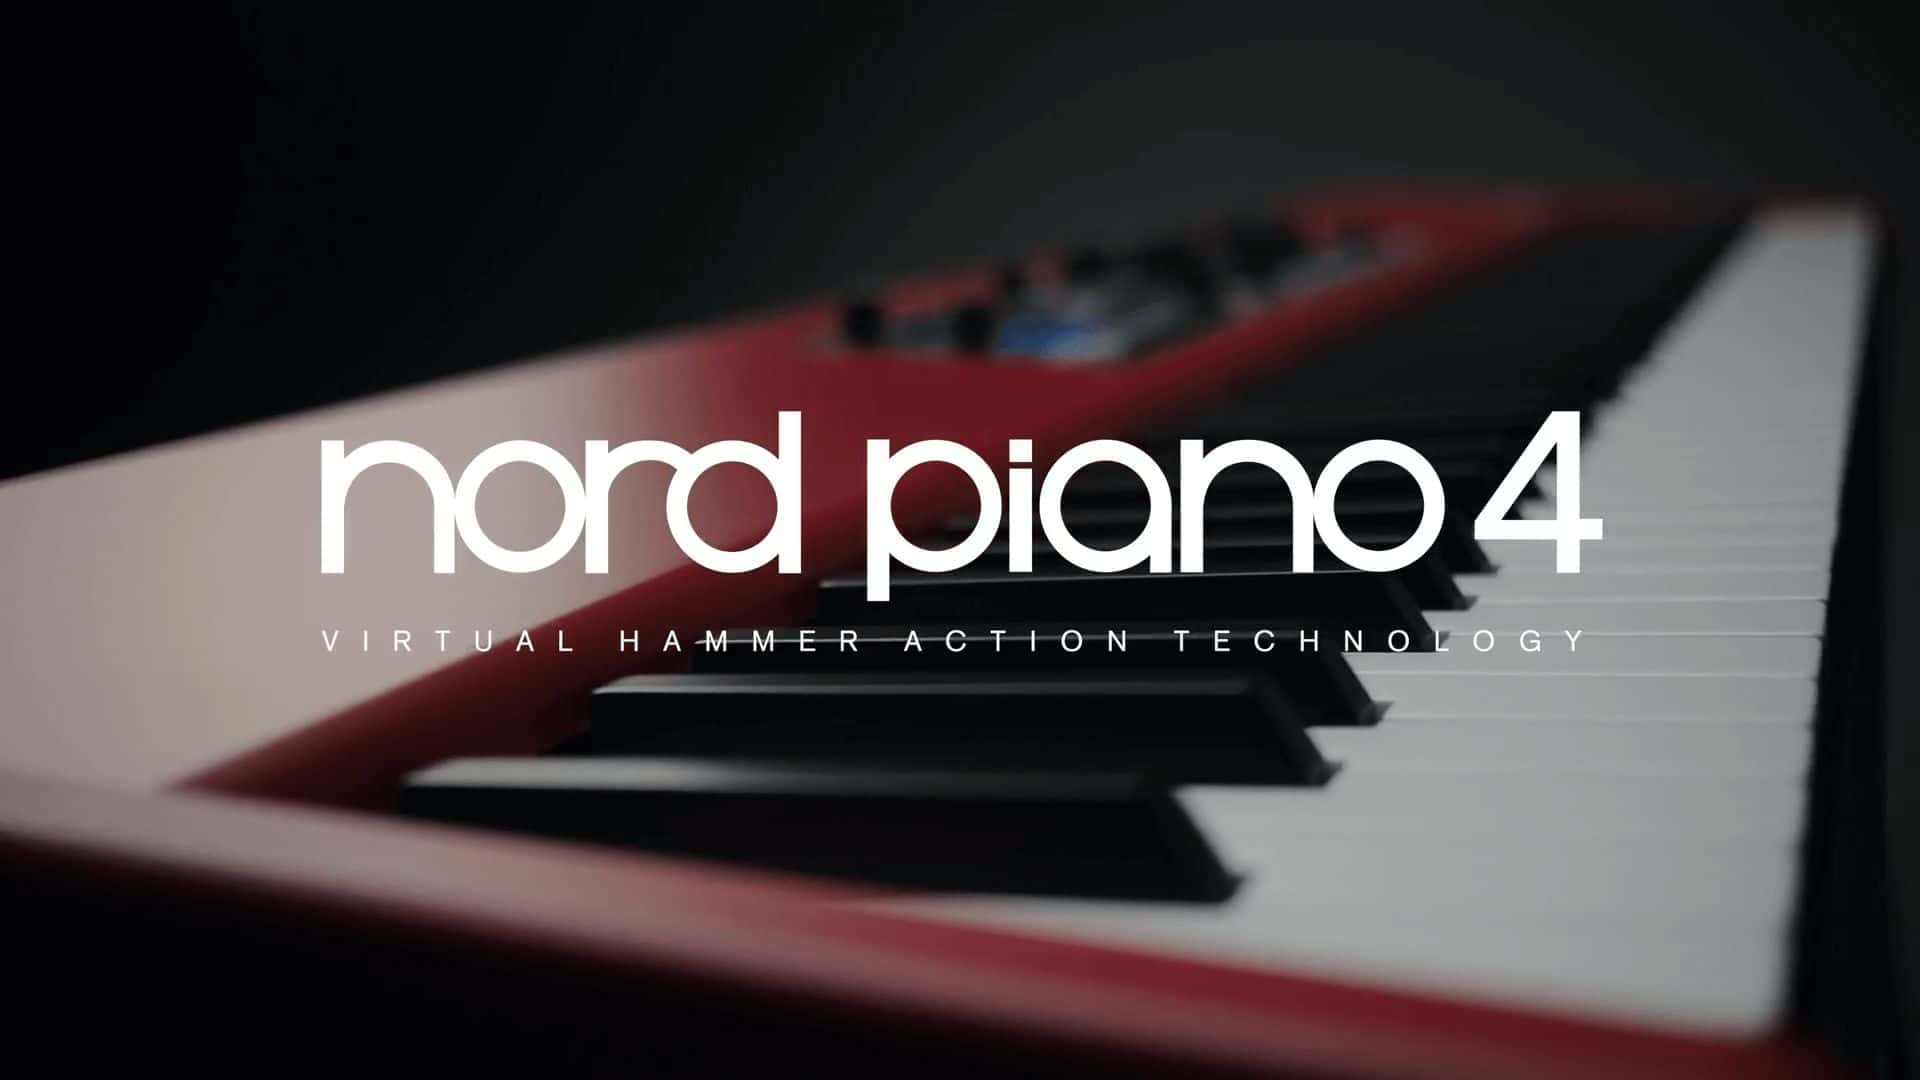 Nord Piano 4 (Amber Upright)-0001